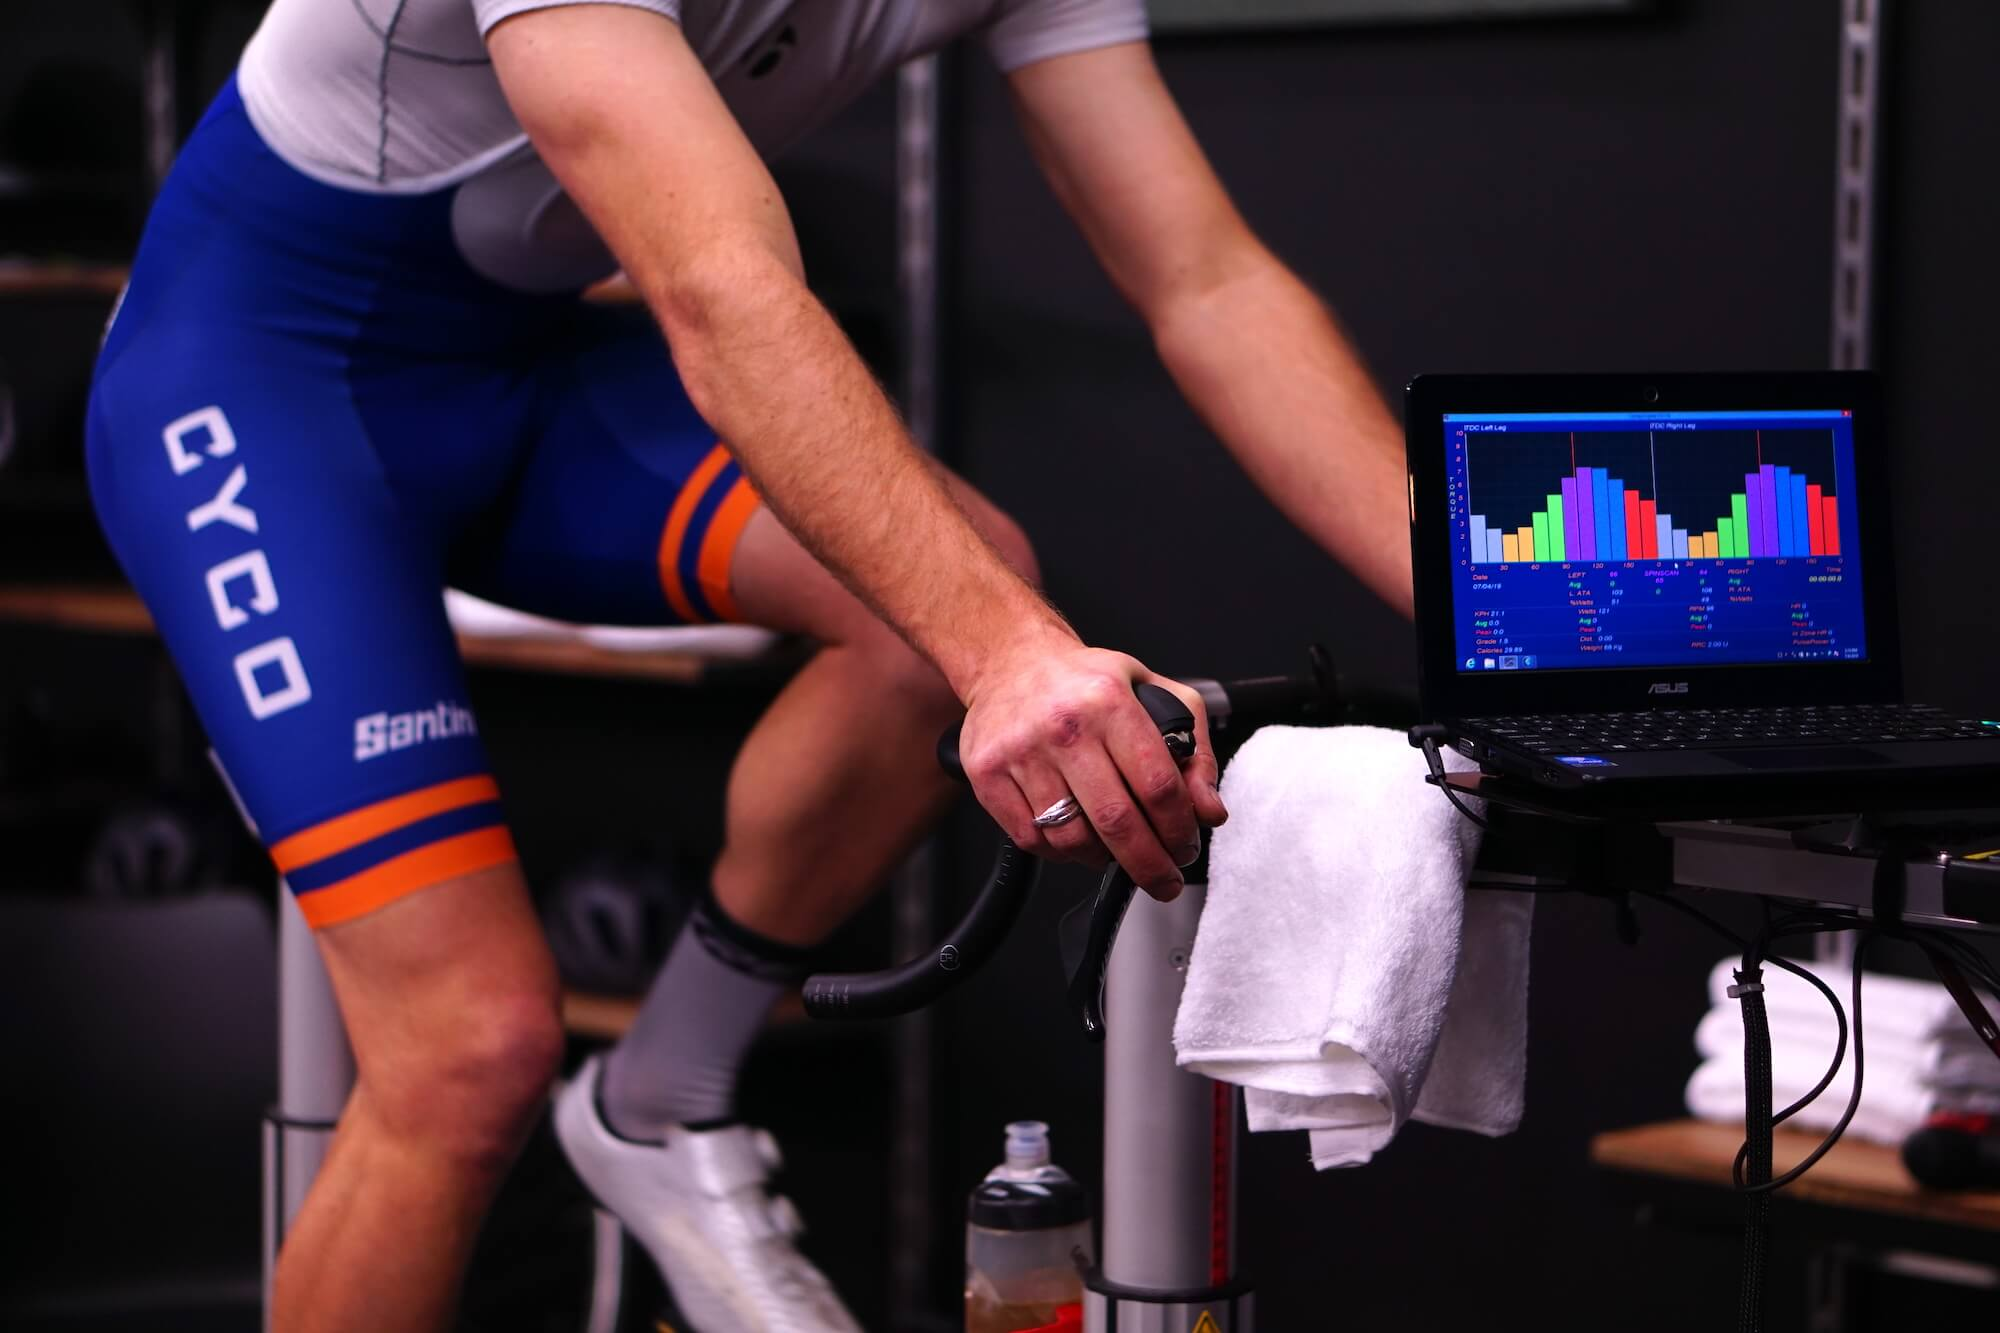 Man getting a bike fit at CYCO bike fit Auckland